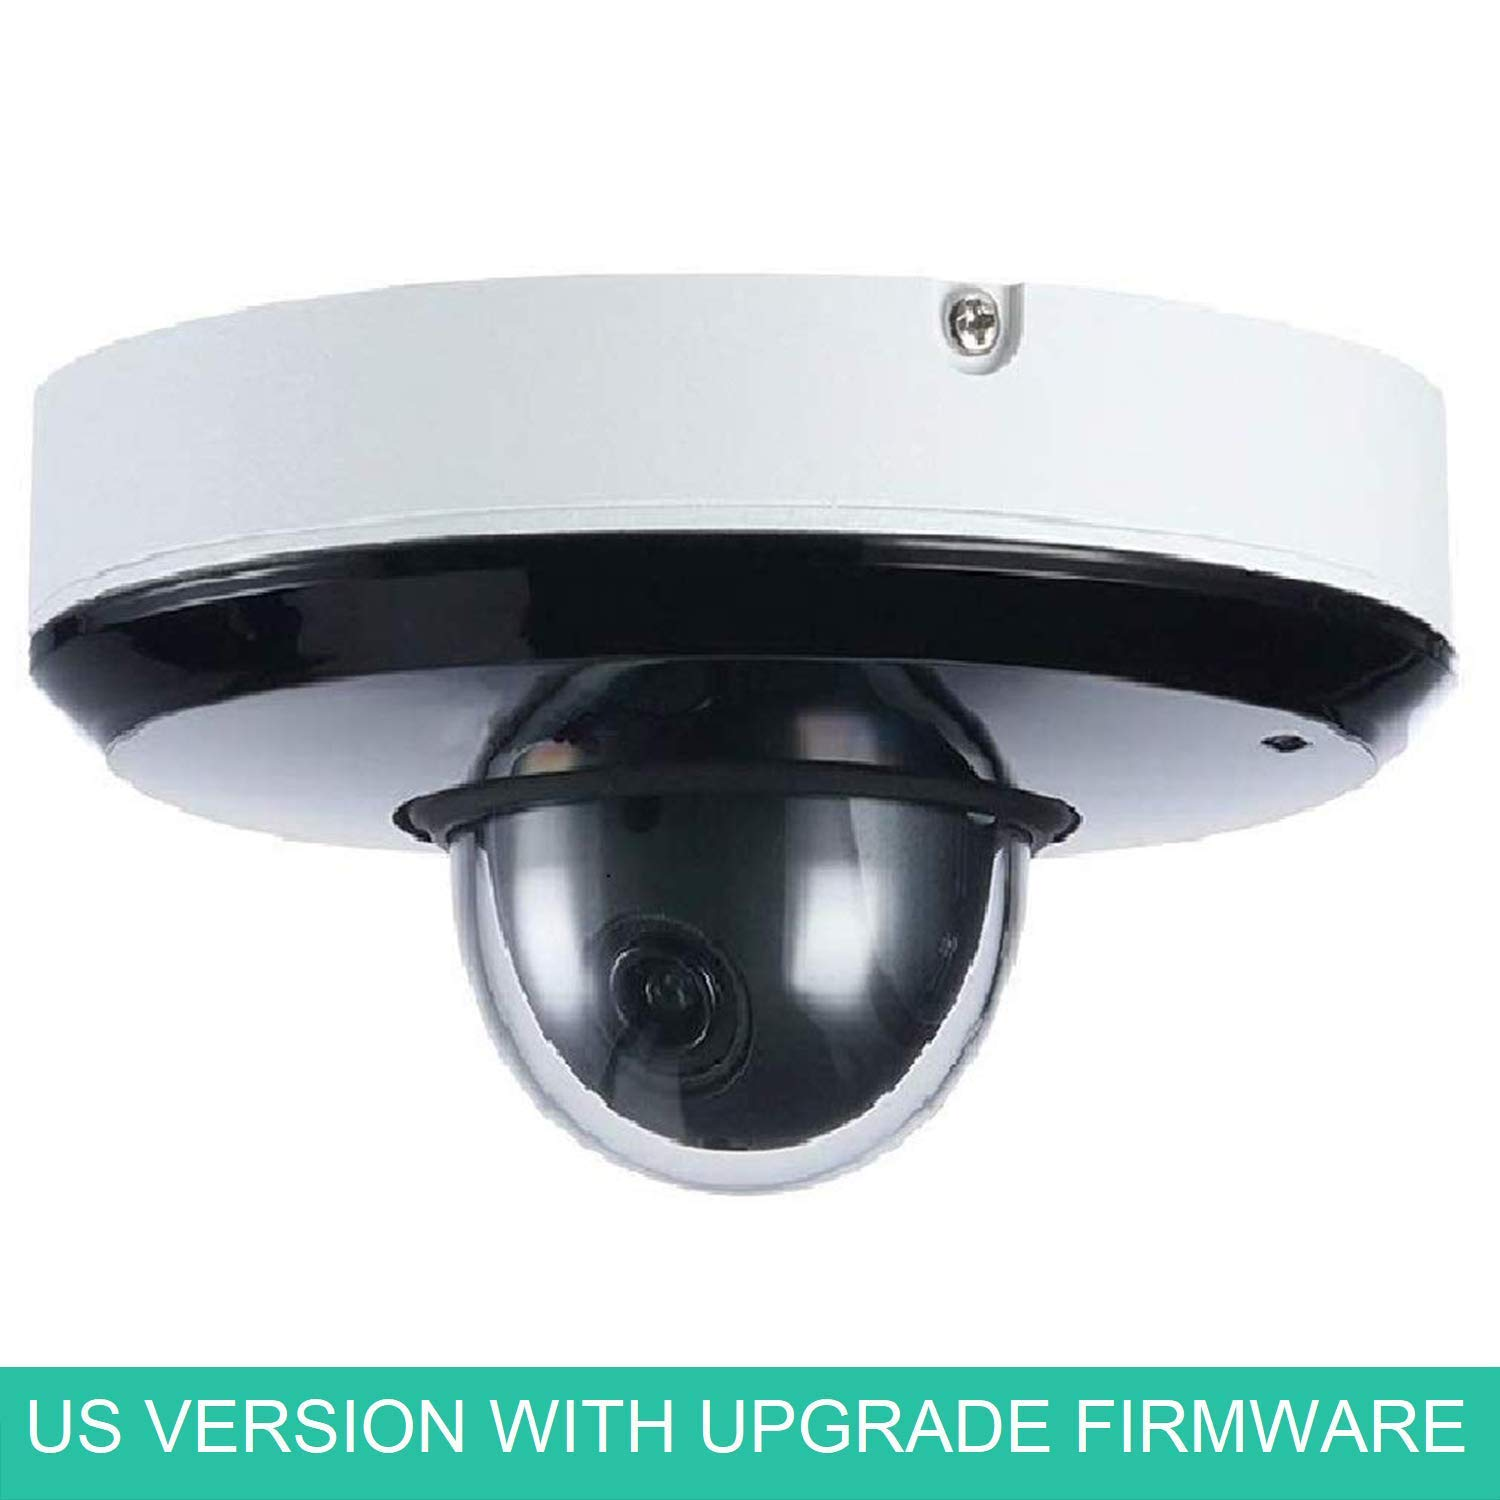 LINOVISION OEM IP Mini PTZ Camera SD1A203T-GN 2MP 3X 2.7-8.1mm Lens Starlight IR PTZ Network Camera US Version with Upgradable Firmware Plug-n-Play with Dahua NVR